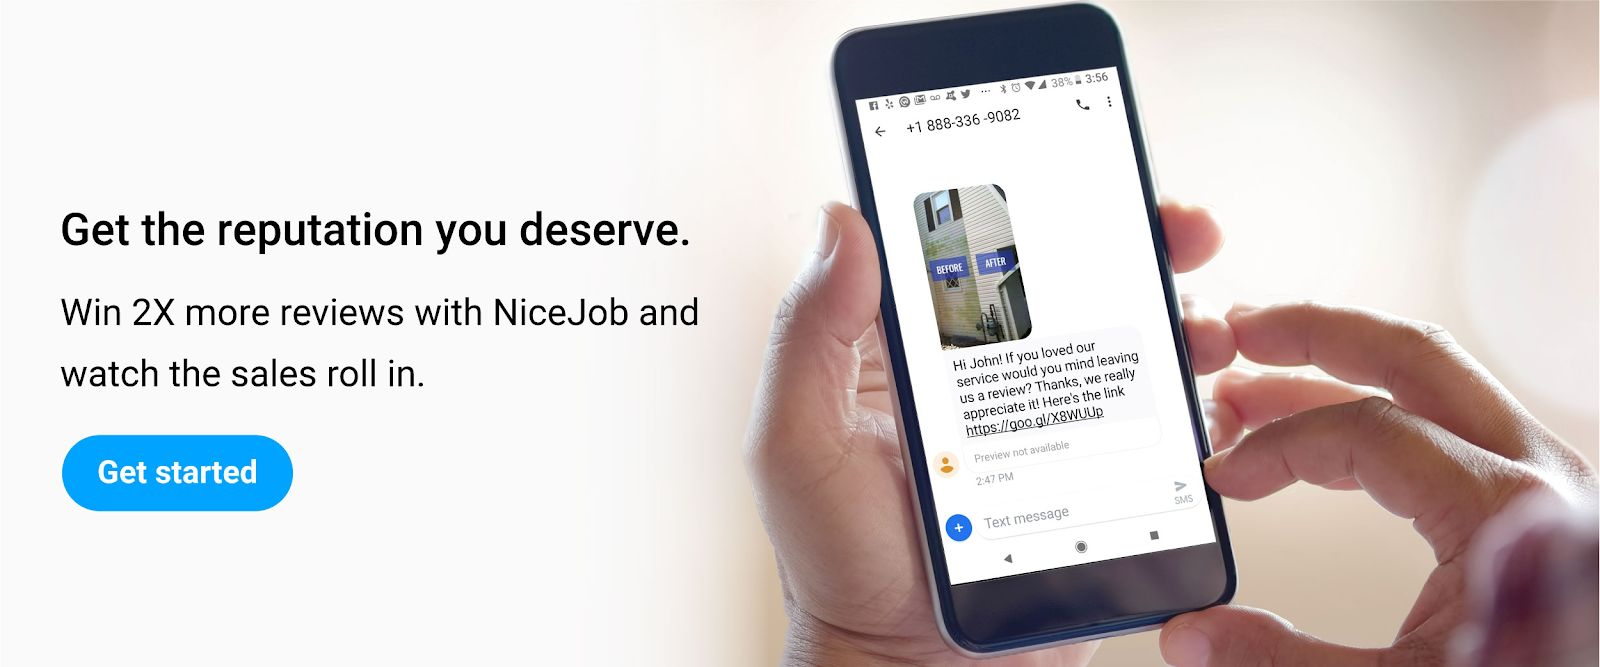 Improve your reputation and get more Google reviews for lawyers and law firms with NiceJob and Clio.